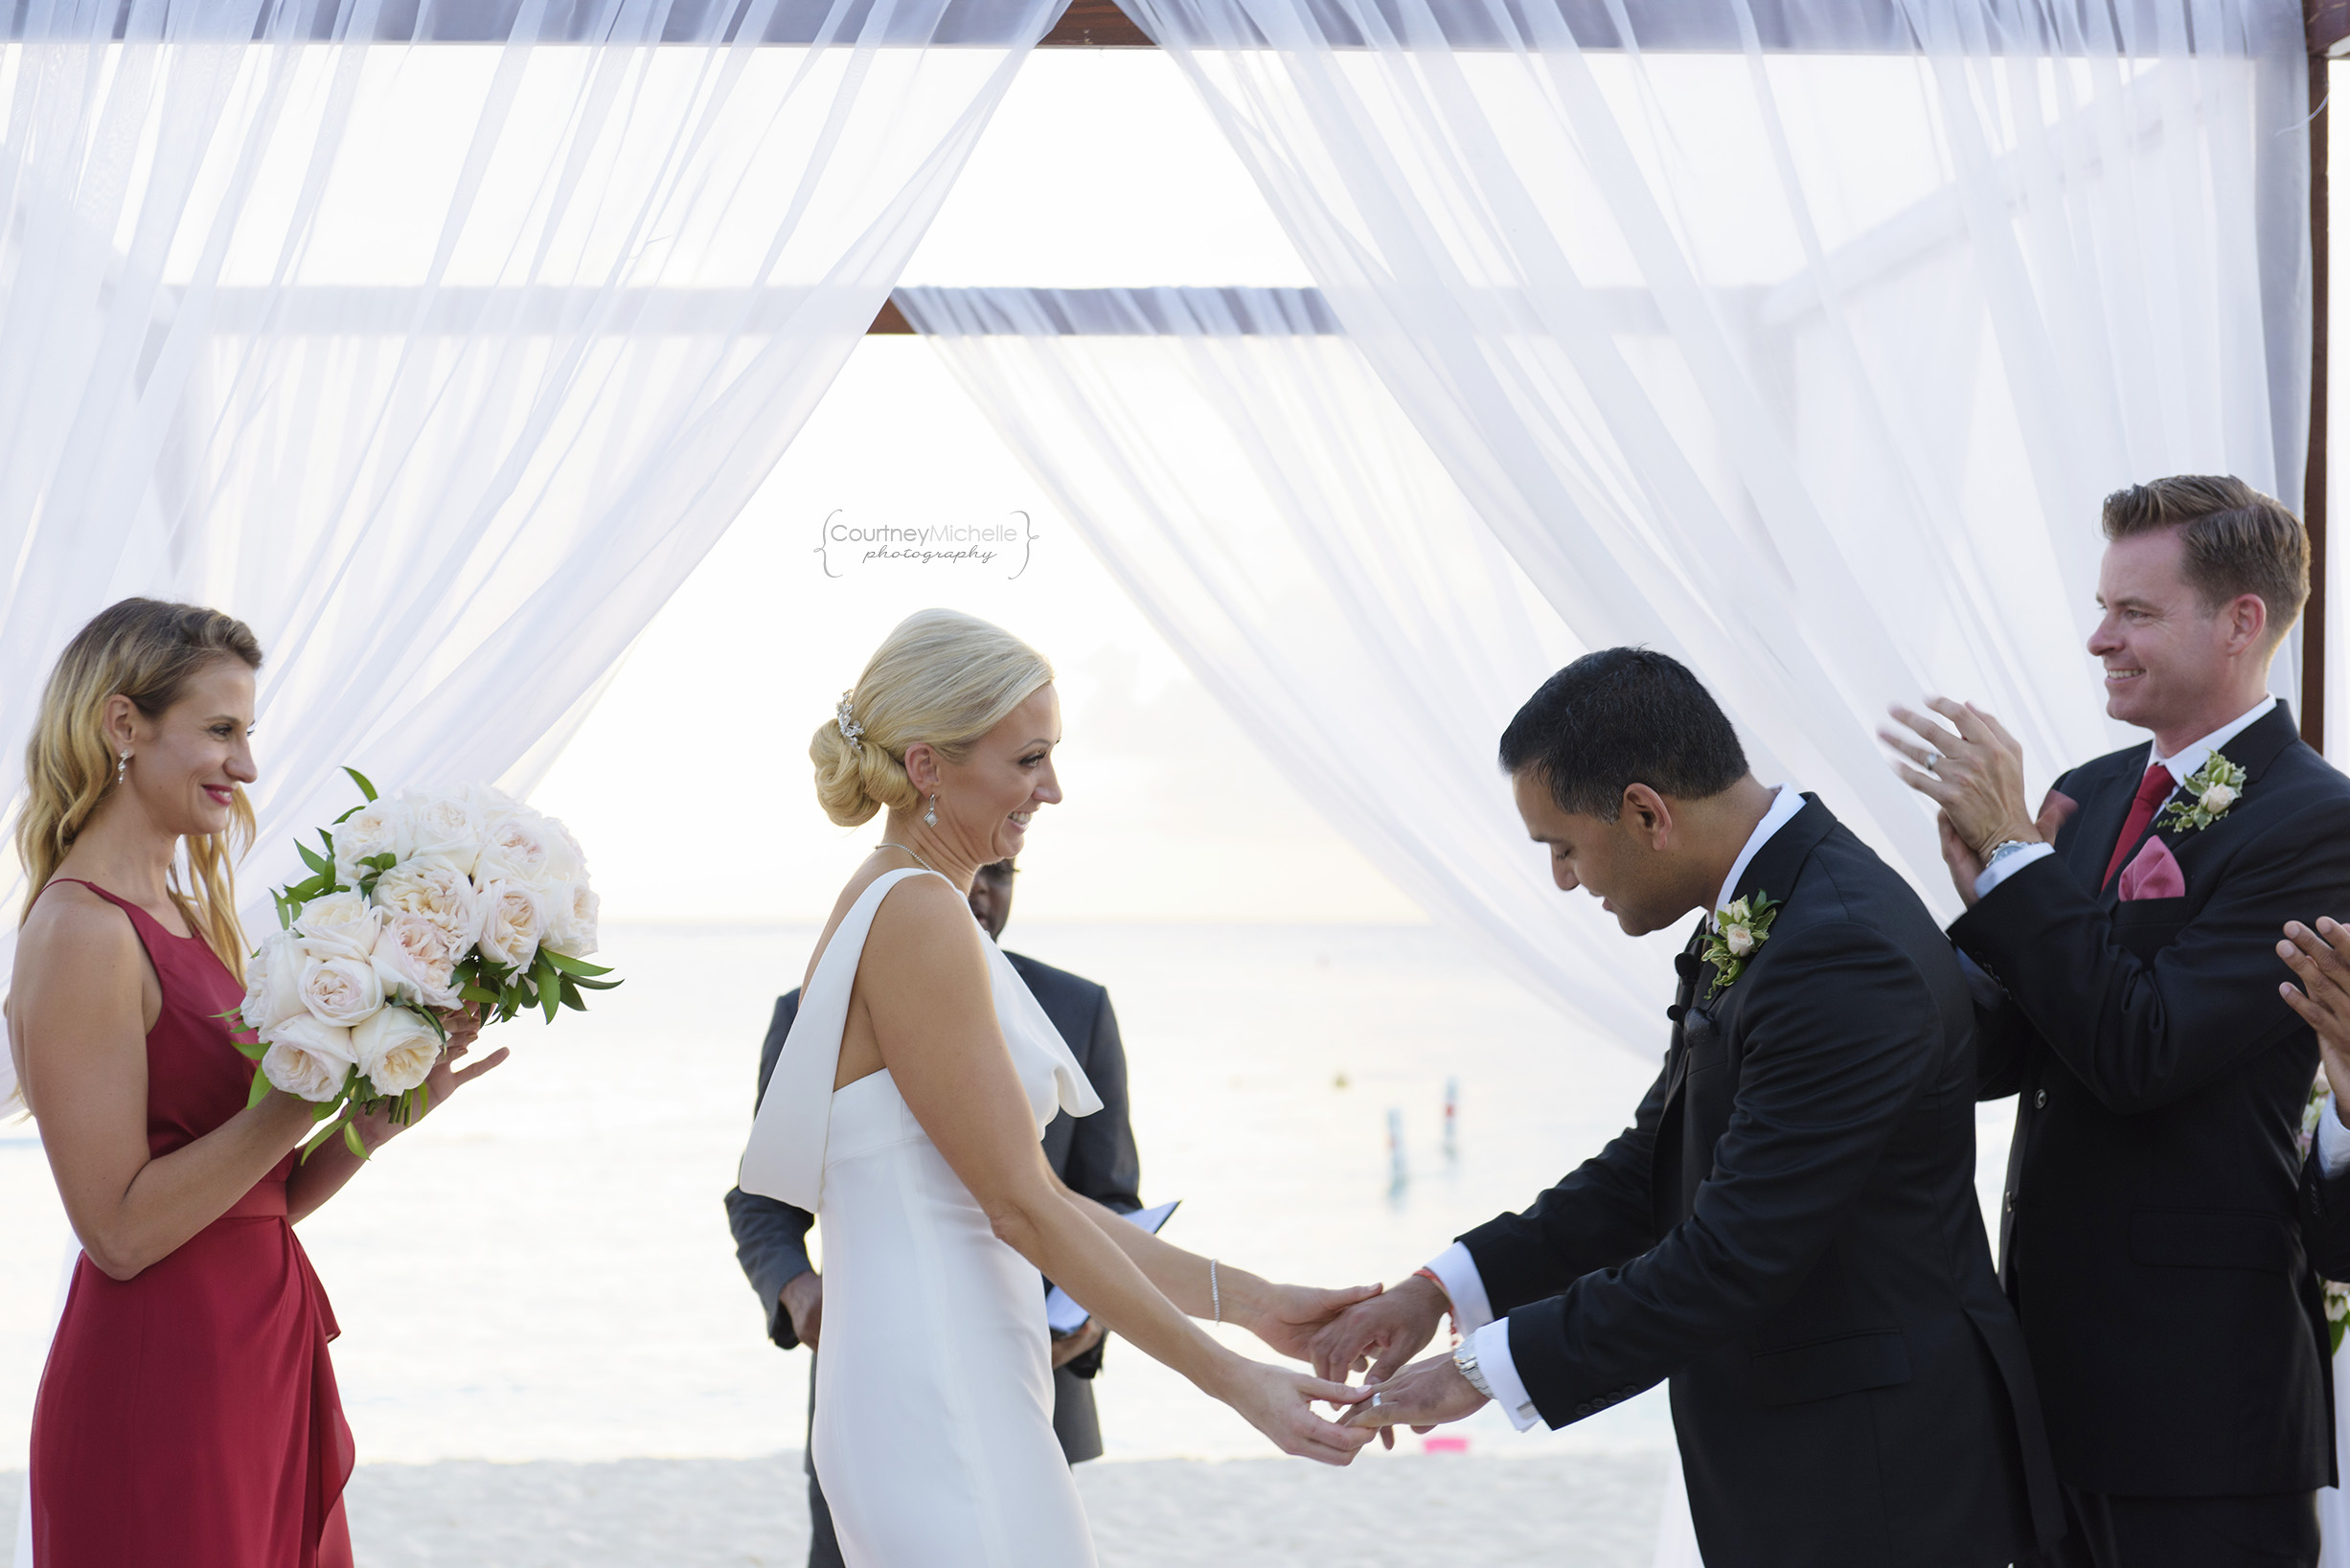 just-married-grand-cayman-beach-wedding-photography-by-courtney-laper©CopyrightCMP-LeaAnneRaj-7805.jpg